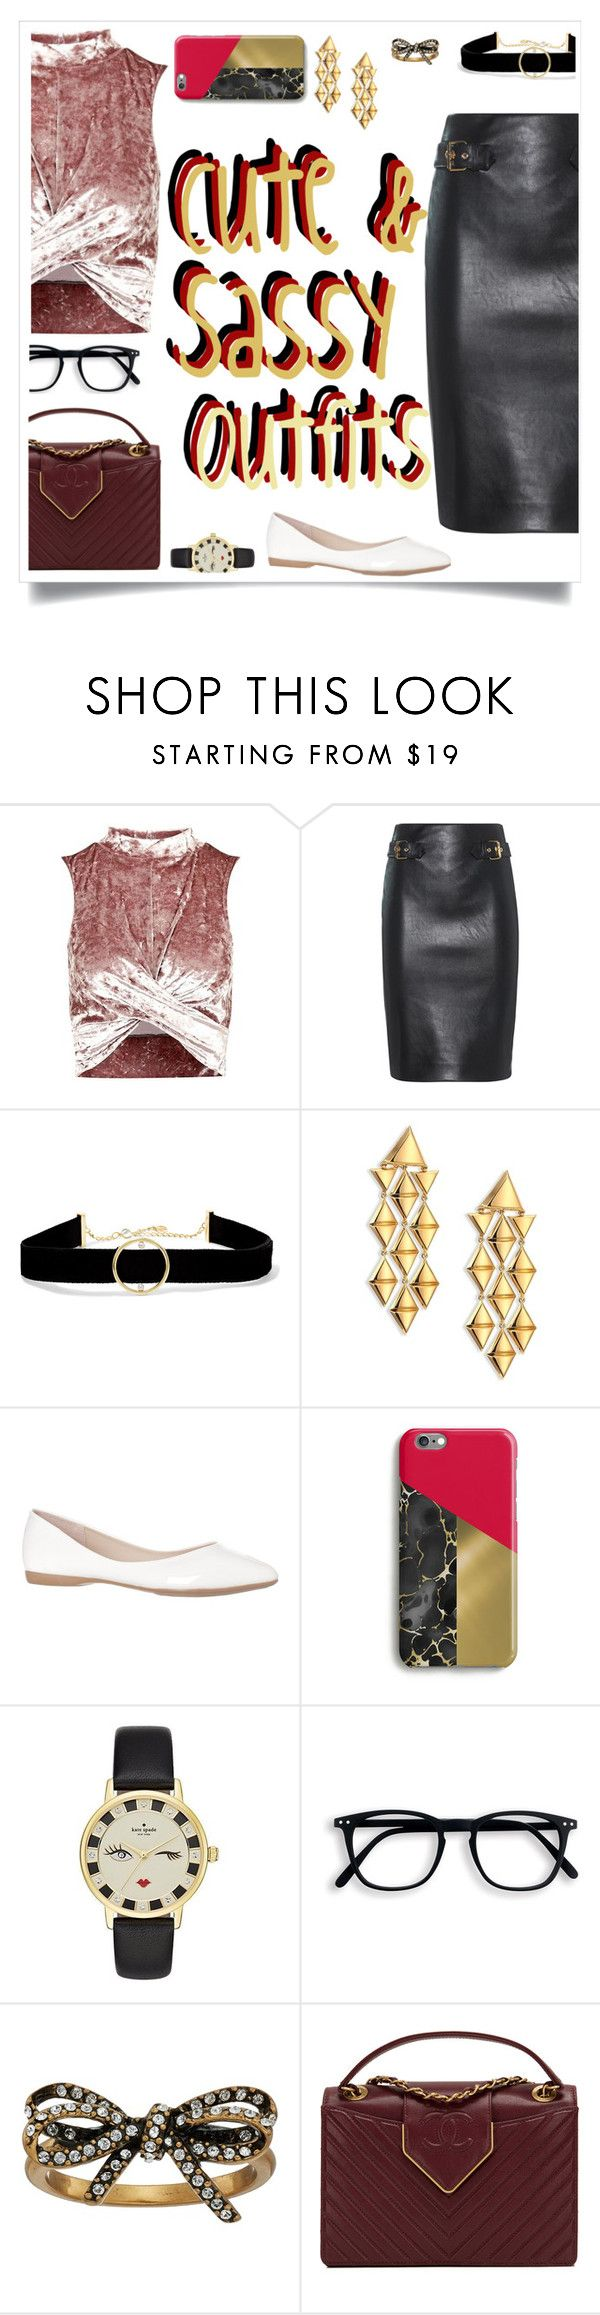 """""""Cute and Sassy"""" by alliesmns ❤ liked on Polyvore featuring Topshop, Moschino, Anissa Kermiche, Marina B, Kate Spade, Marc Jacobs and Chanel"""